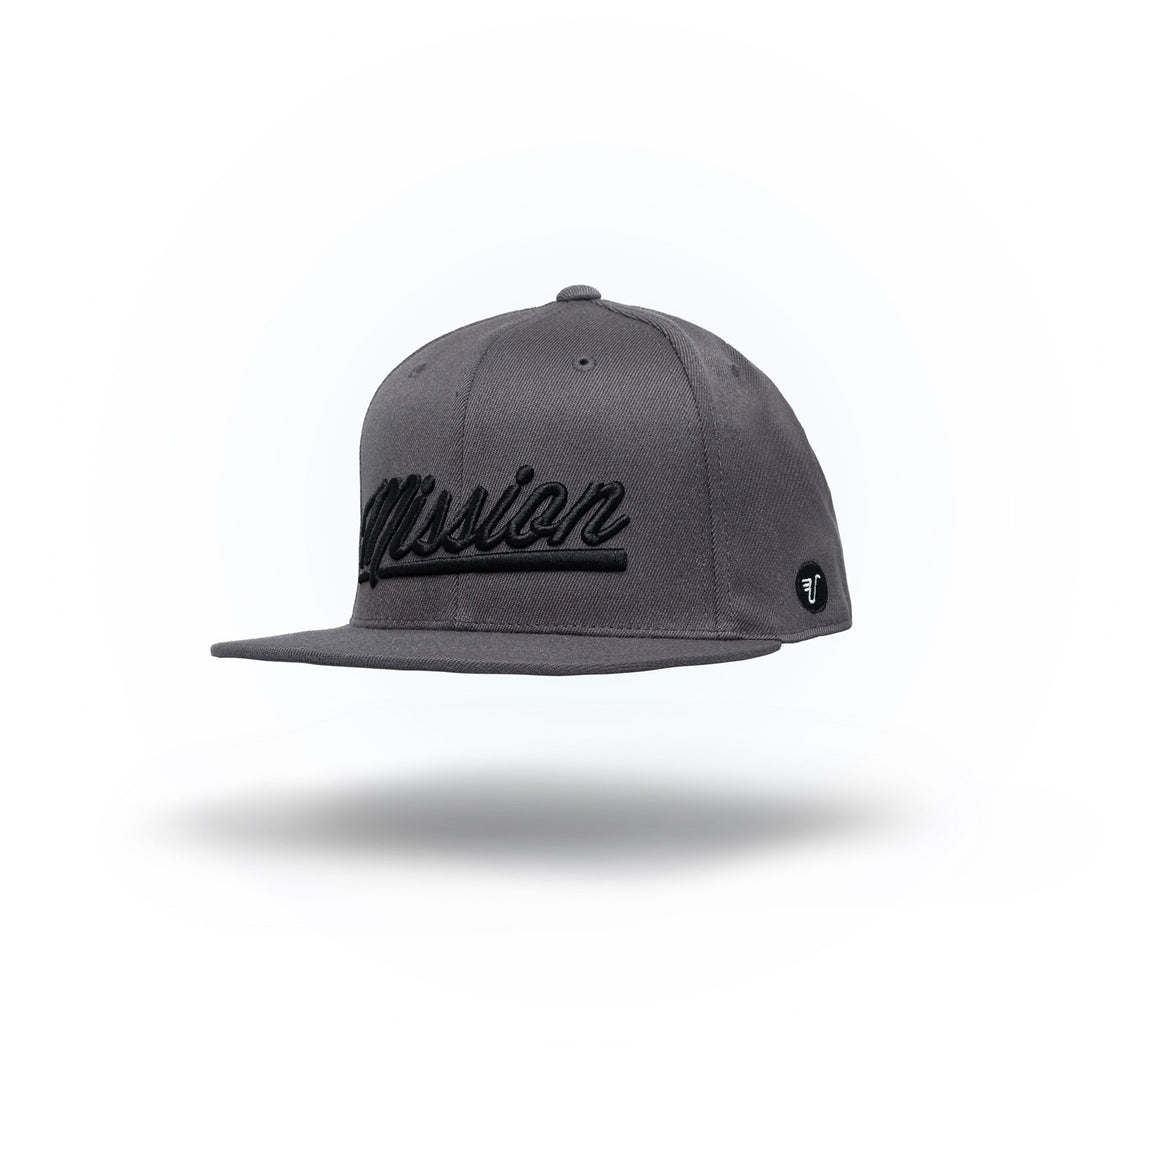 Mission Classic Hat - Dark Gray